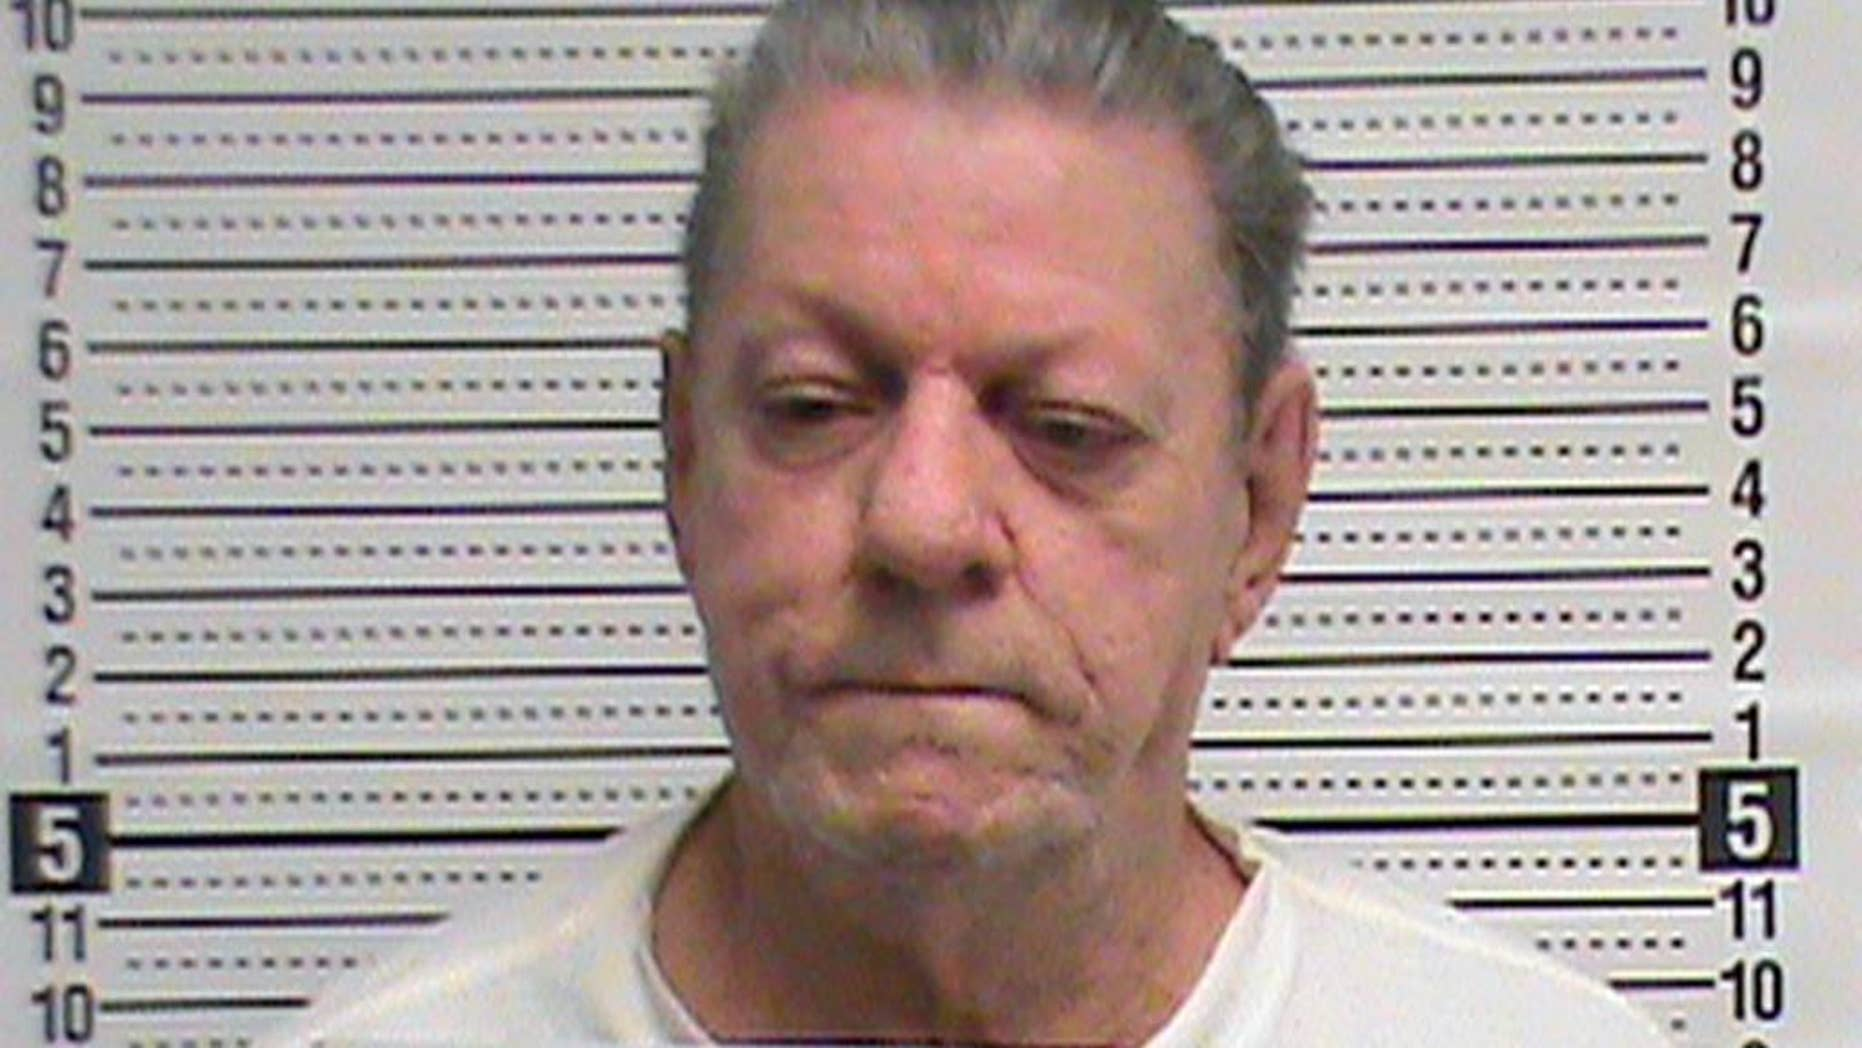 In this March 6, 2015 photo provided by The Missouri Department of Corrections is Cecil Clayton, 74, Missouri's oldest death row inmate. Clayton was convicted of gunning down Christopher Castetter, a sheriff's deputy in rural southwest Missouri's Barry County in 1996. (AP Photo/Missouri Department of Corrections)